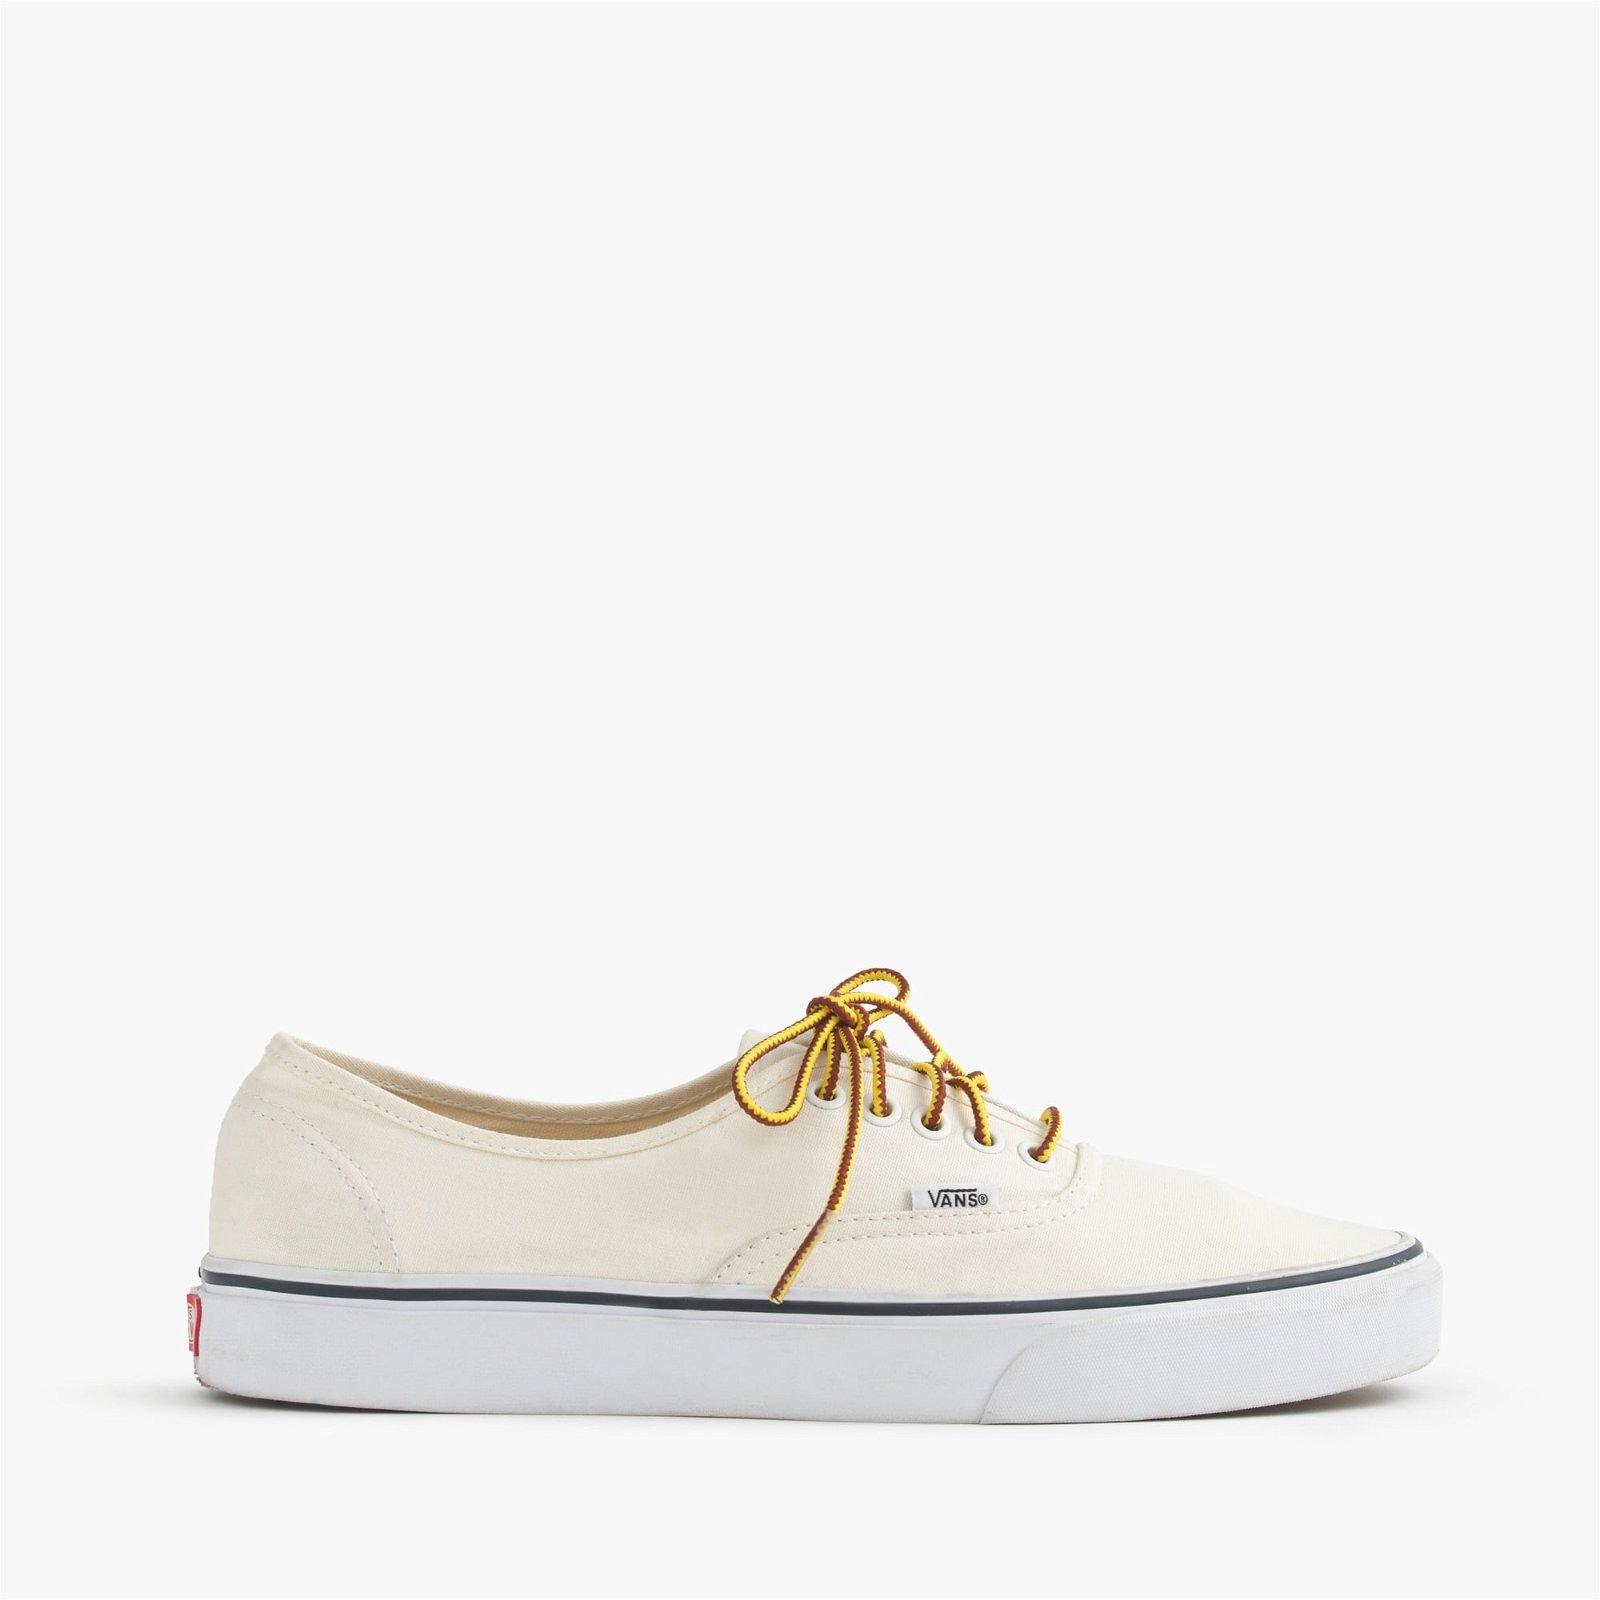 Vans for J.Crew canvas authentic sneakers